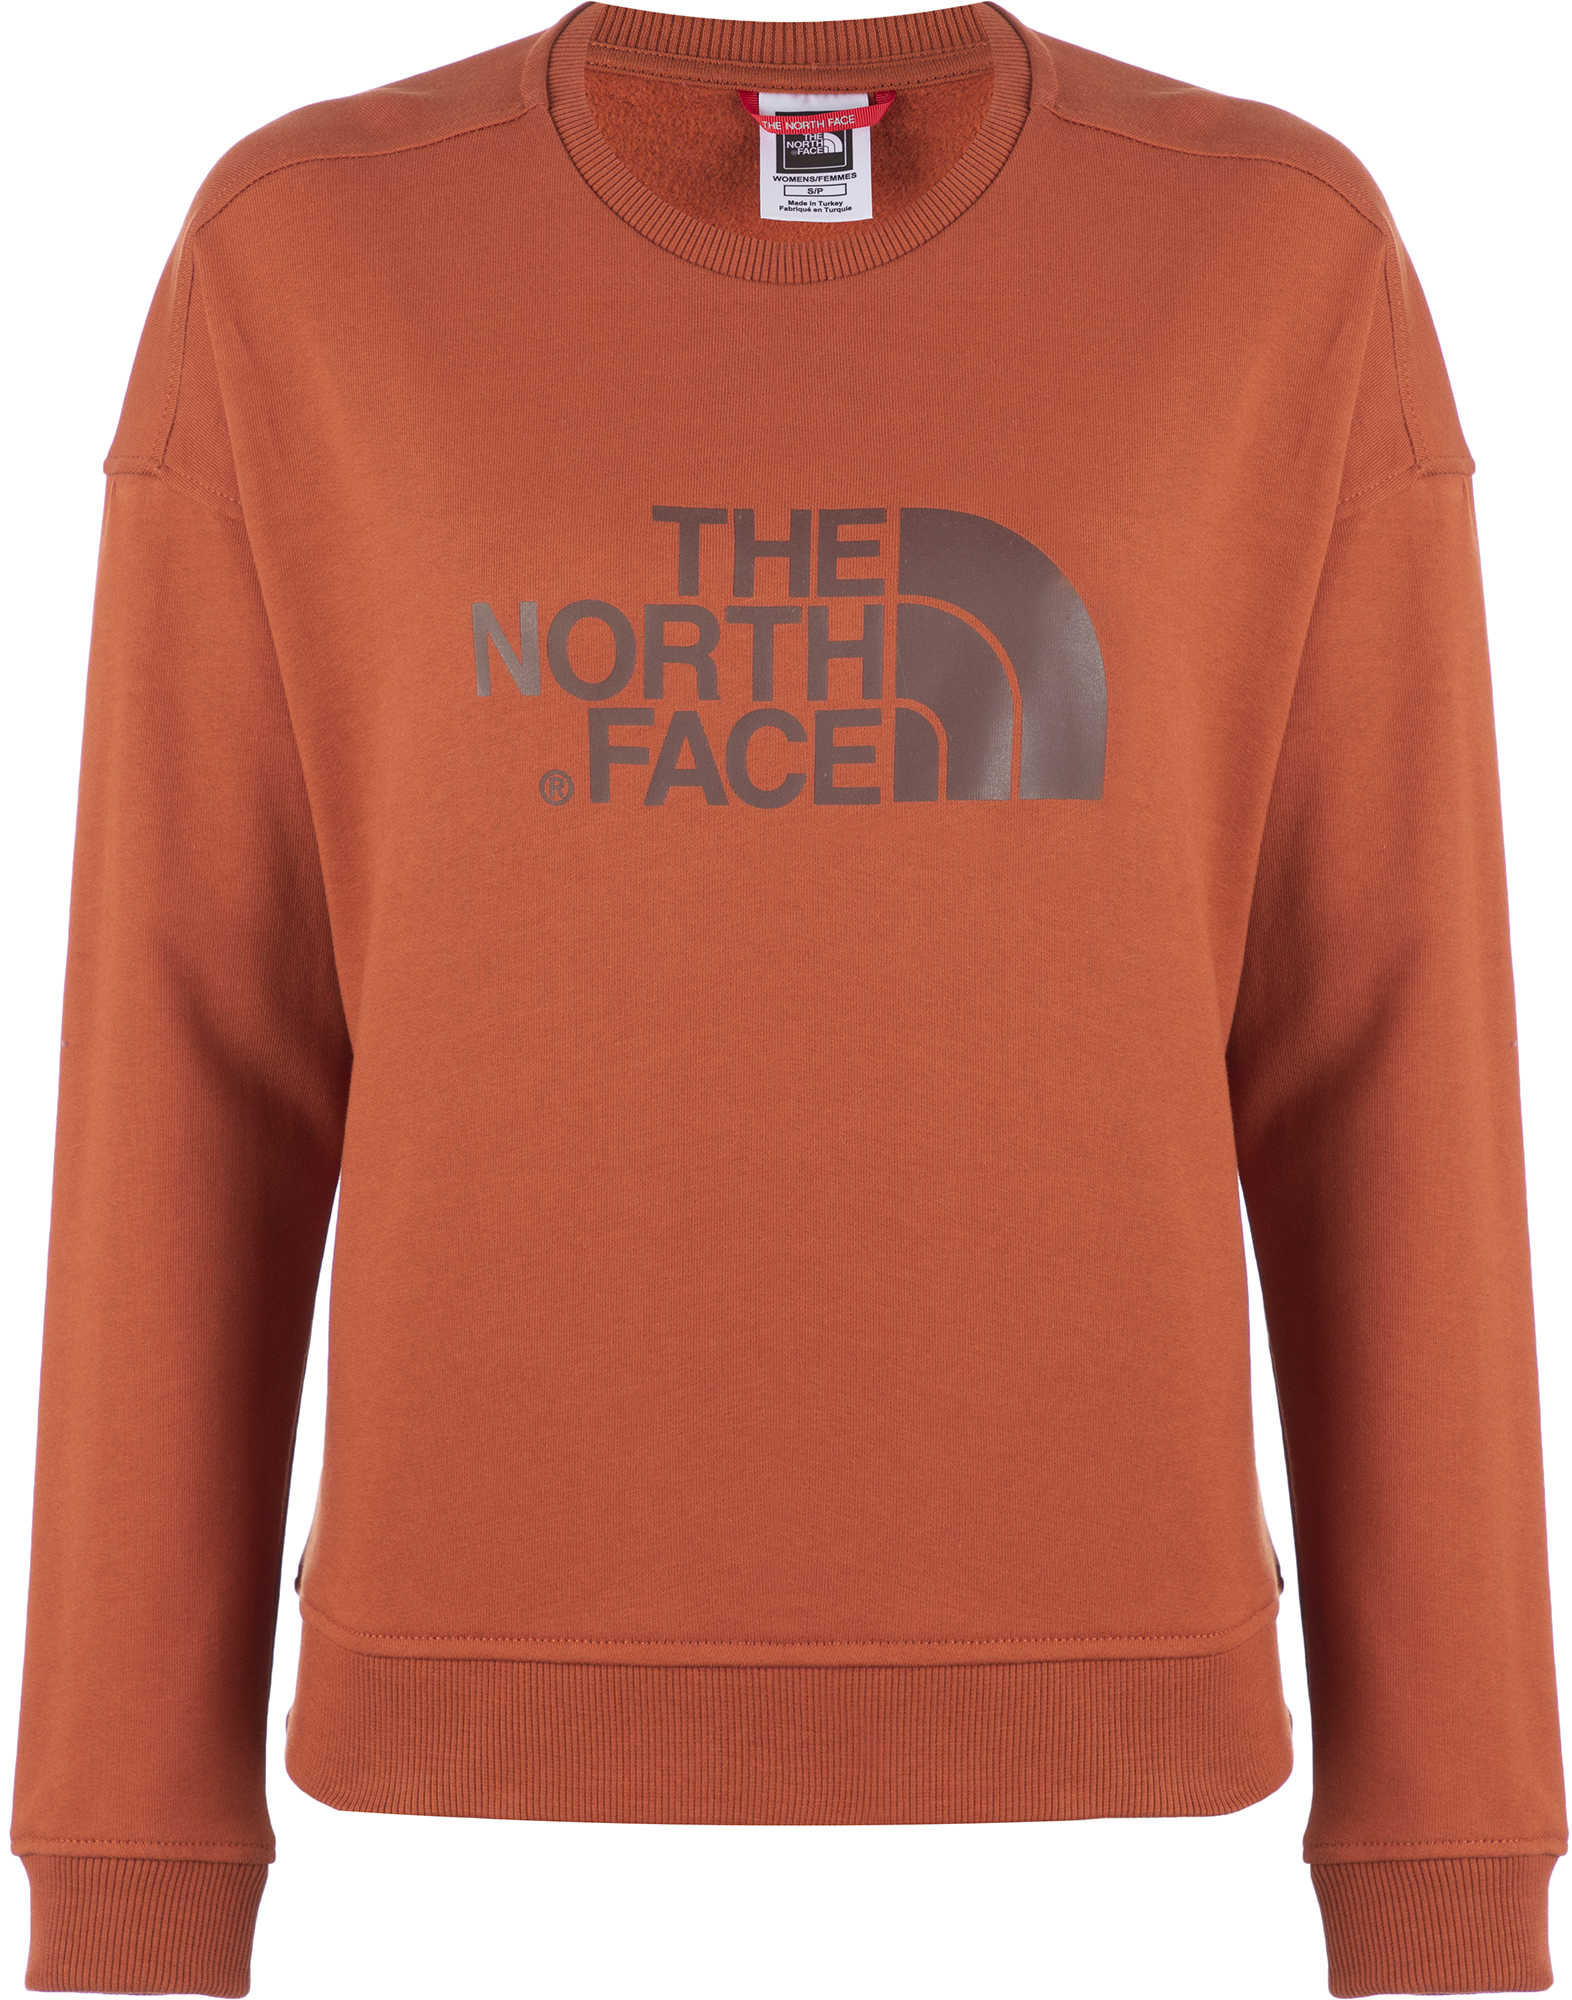 The North Face Свитшот женский The North Face Drew Peak Crew, размер 48 nancy drew 10